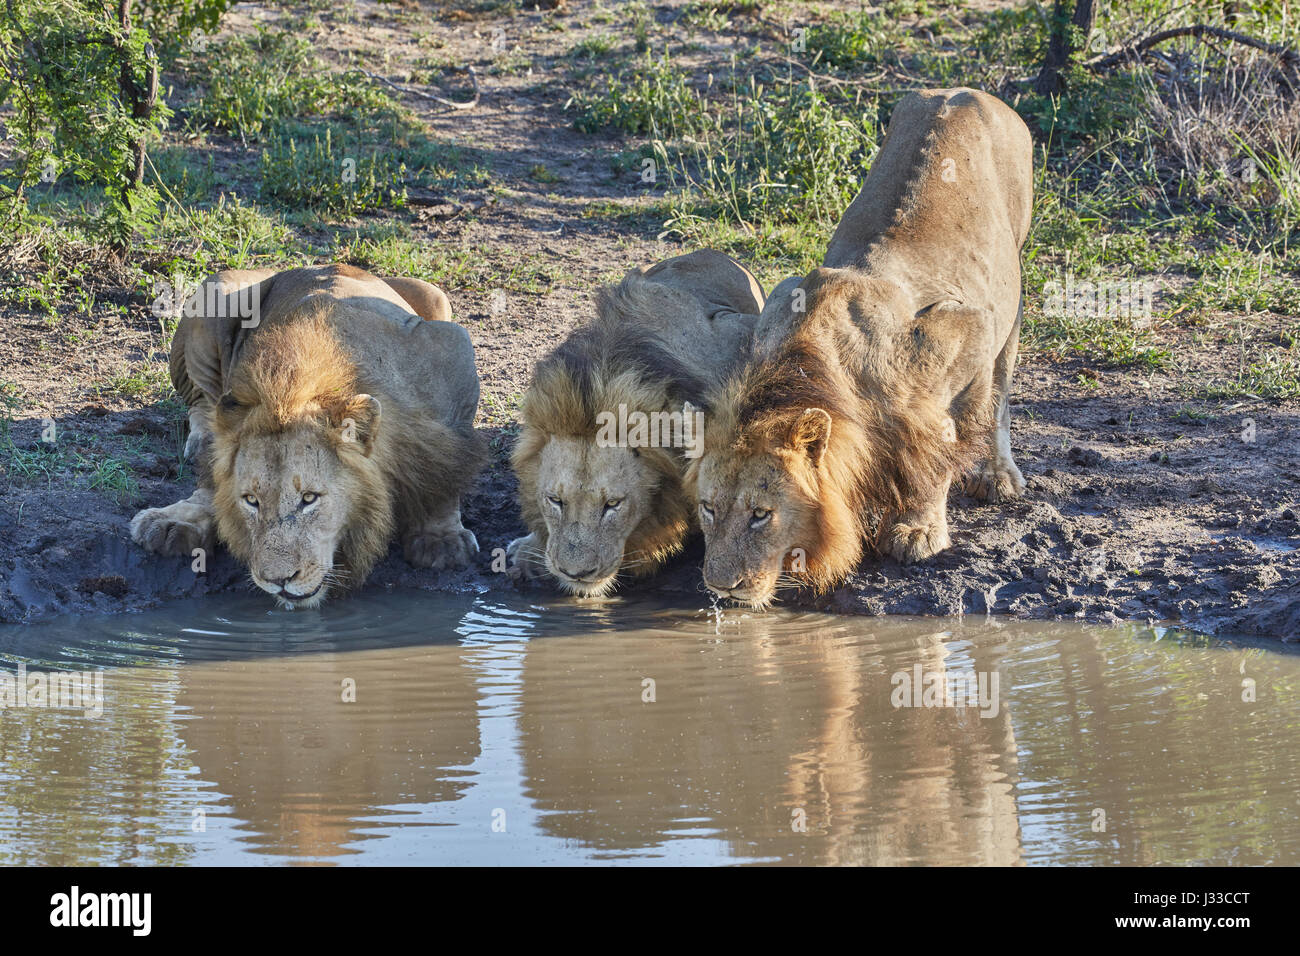 Lions drinking at a waterhole Krueger National park, South Africa, Africa - Stock Image